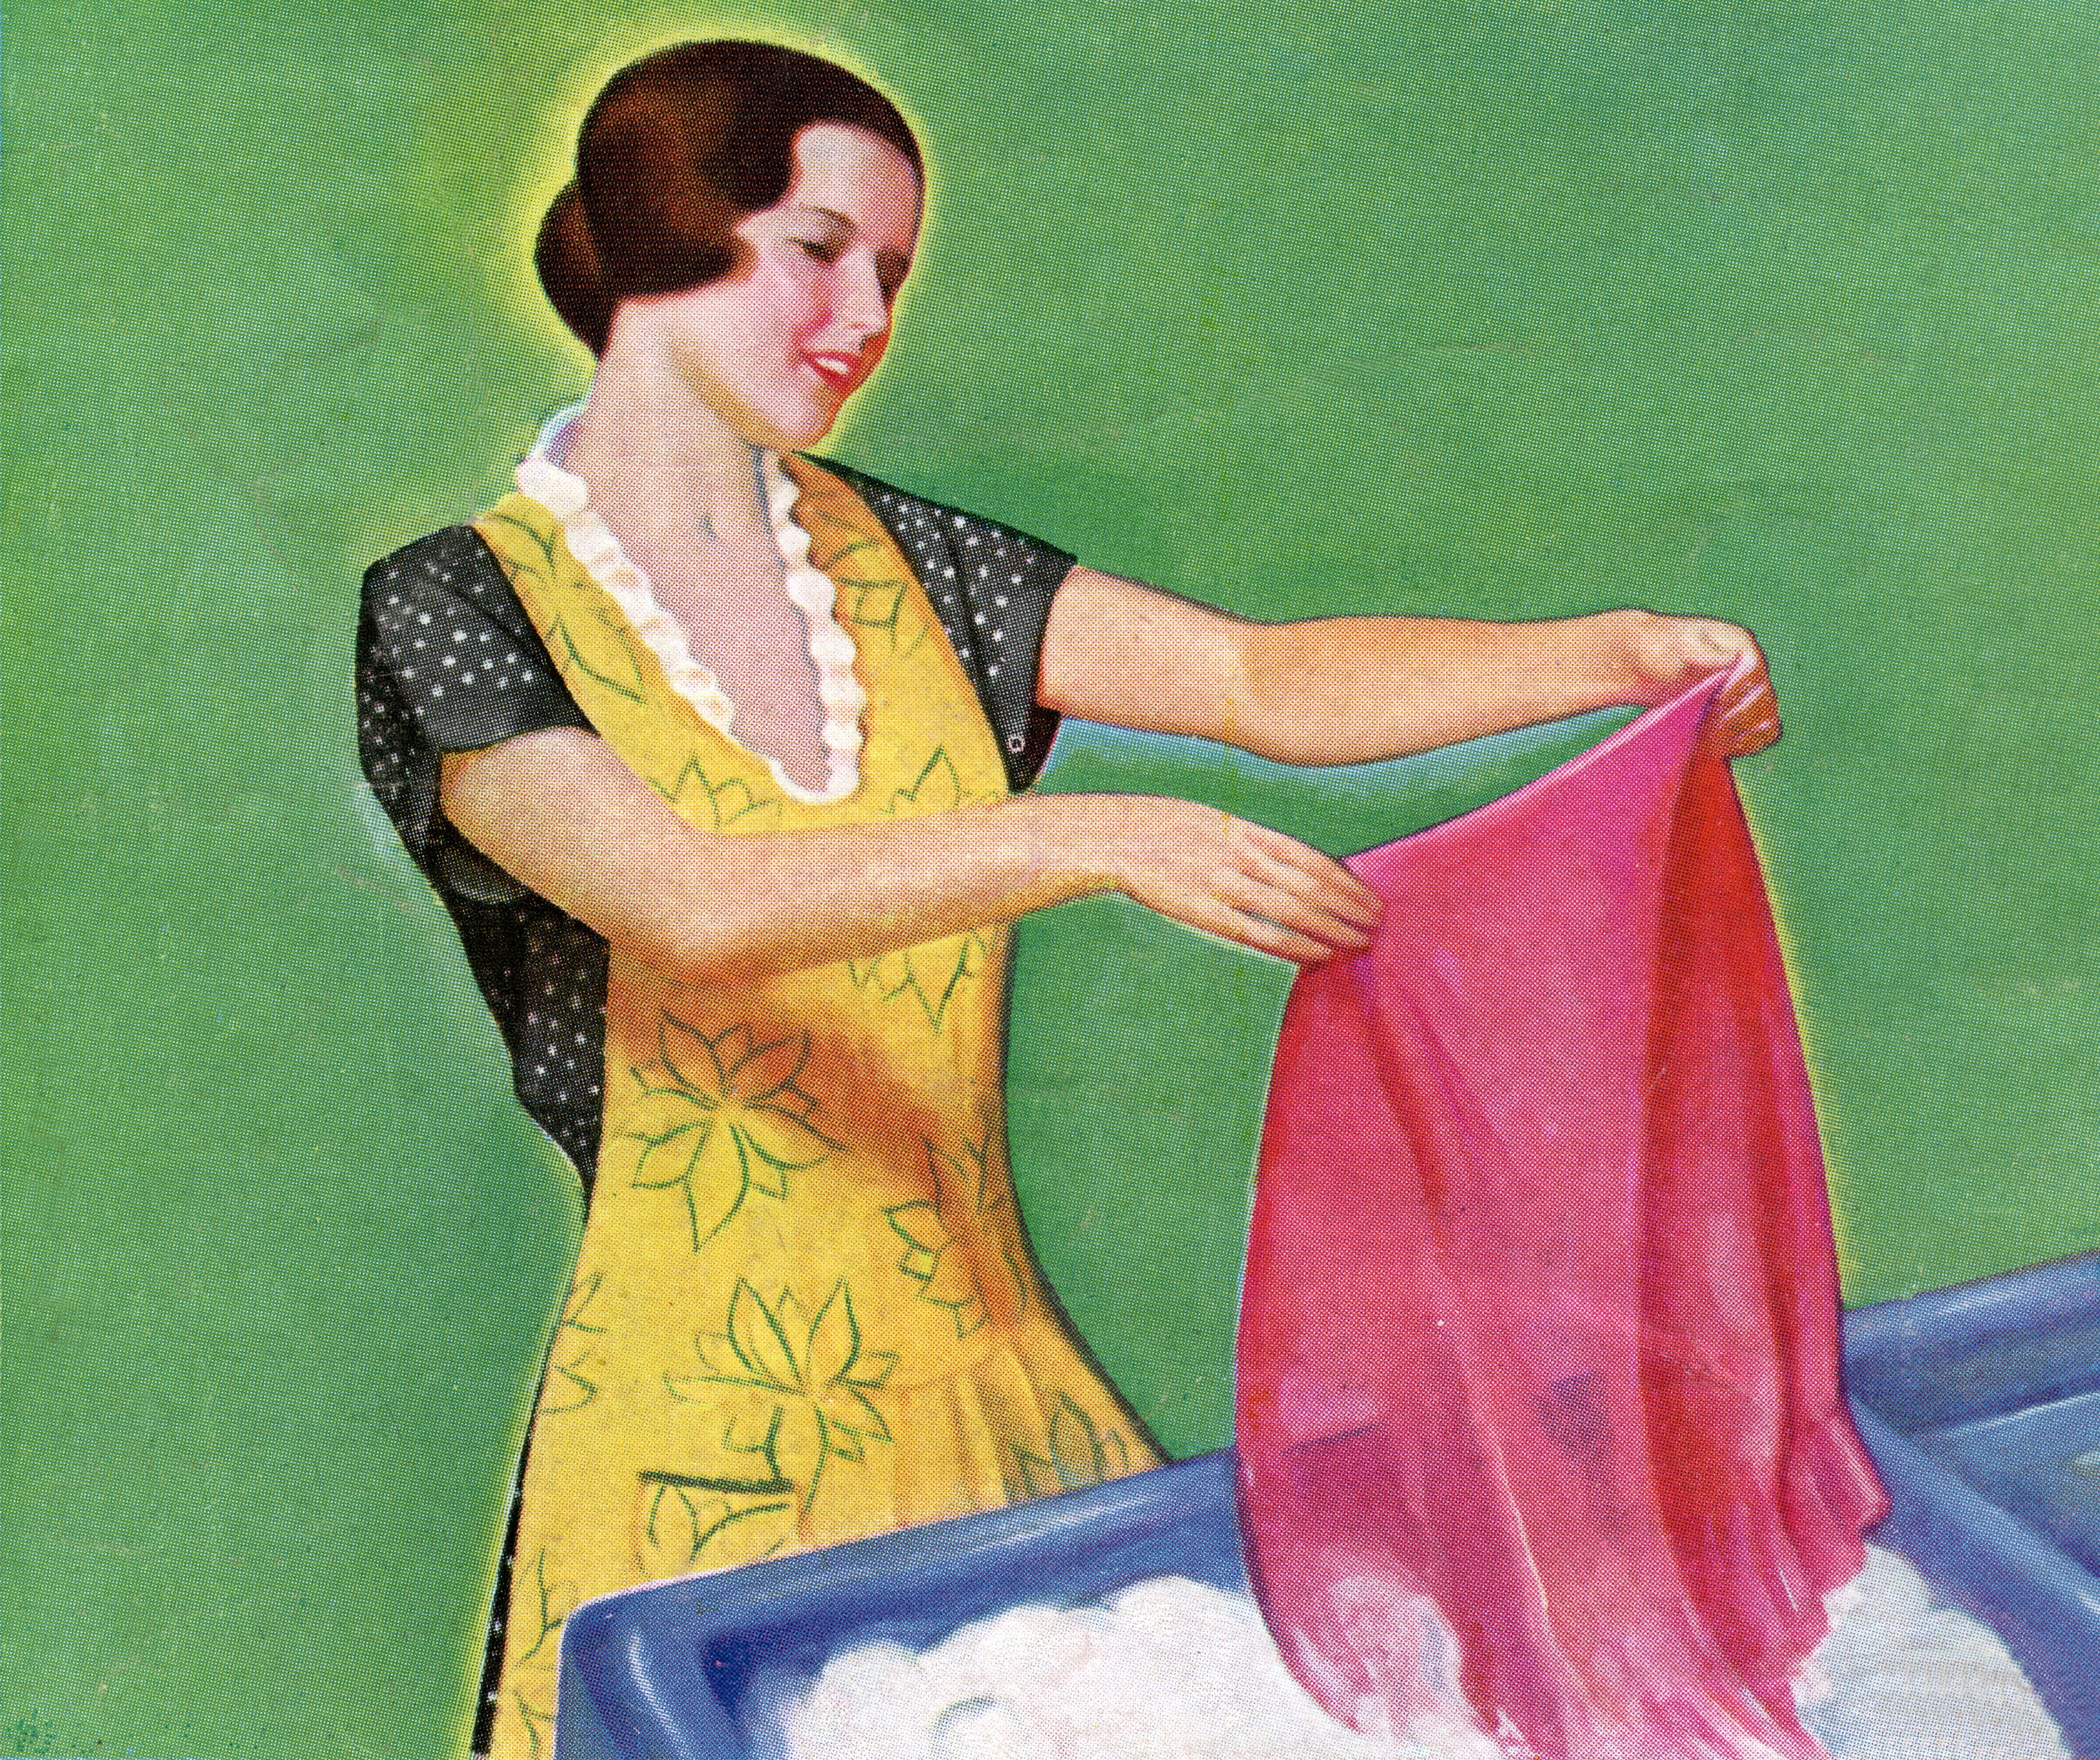 Housewife Doing Hand Laundry